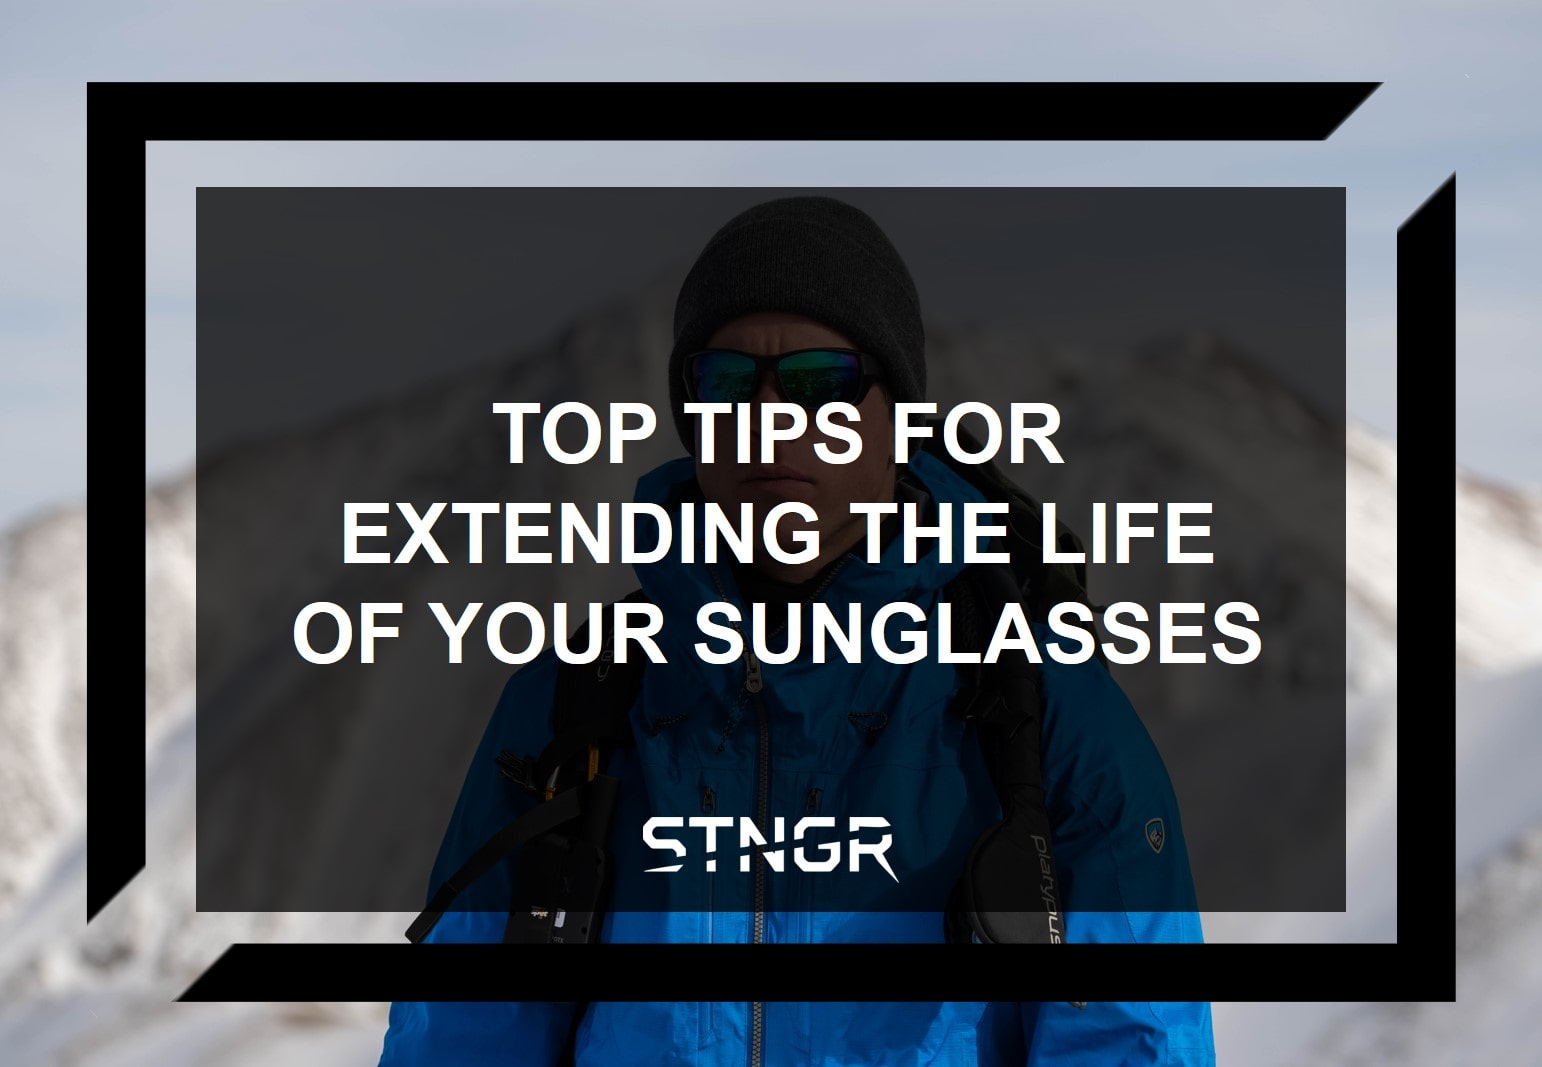 Top Tips for Extending the Life of Your Sunglasses